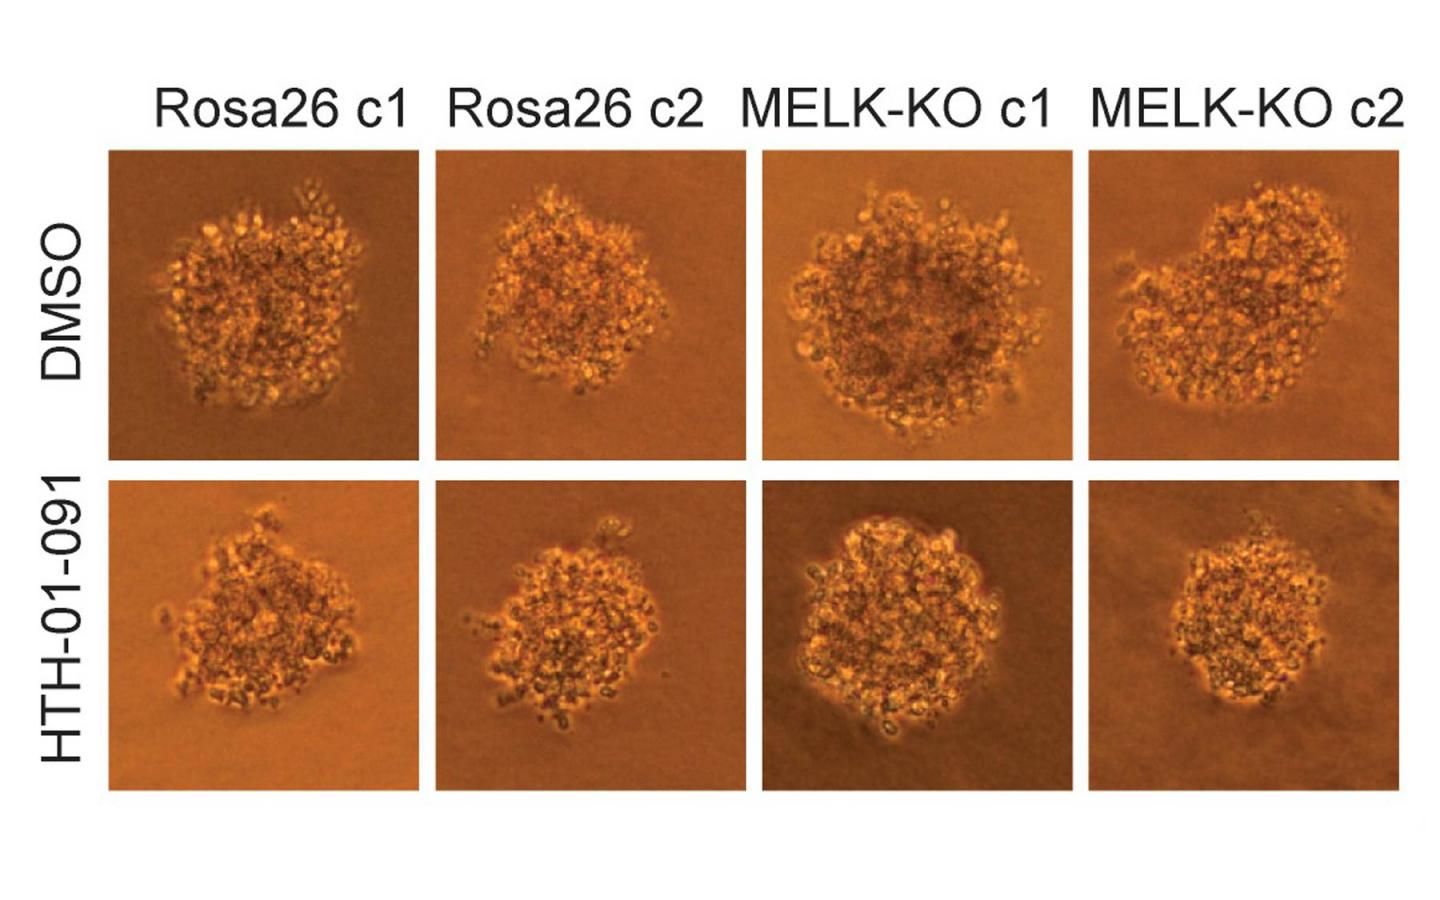 The growth of human colon cancer cells (raised in culture) is unaffected by the MELK gene. Top row: untreated cells; bottom row: cells treated with a MELK inhibitor drug. Left two columns, control cells; right two columns, cells in which MELK gene has been knocked out. CSHL researchers conclude that MELK is not involved in cancer proliferation. [Sheltzer Lab, CSHL]